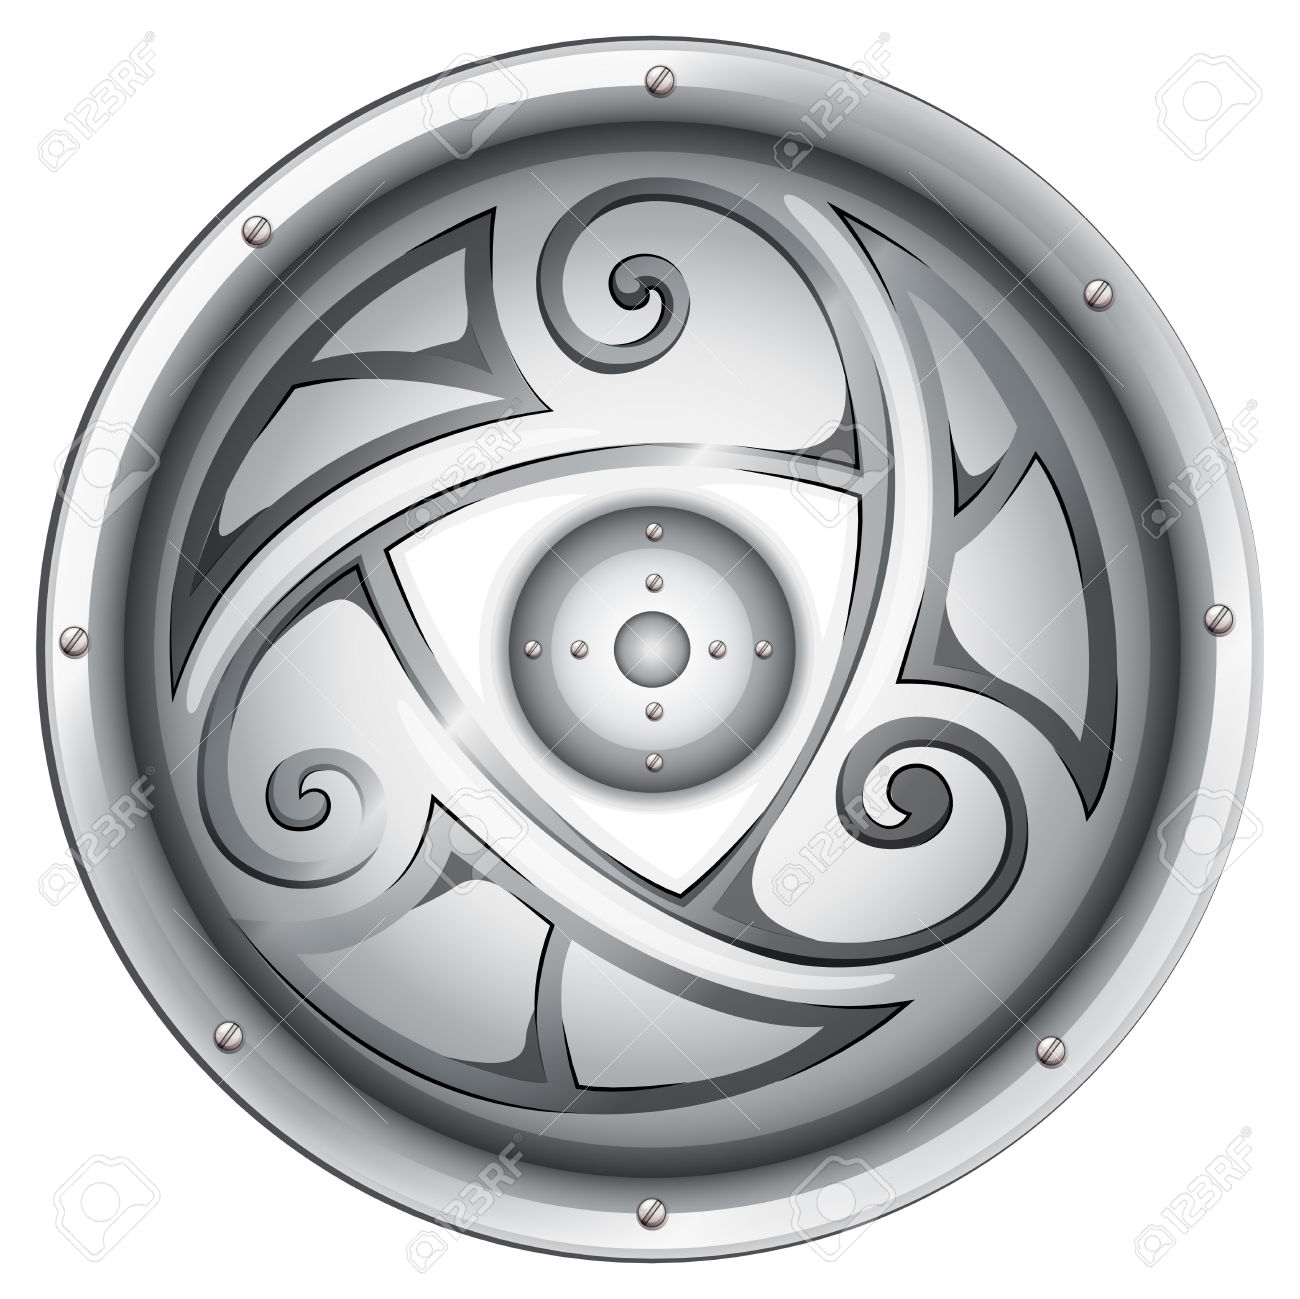 Illustration Of A Viking's Shield On A White Background Royalty.